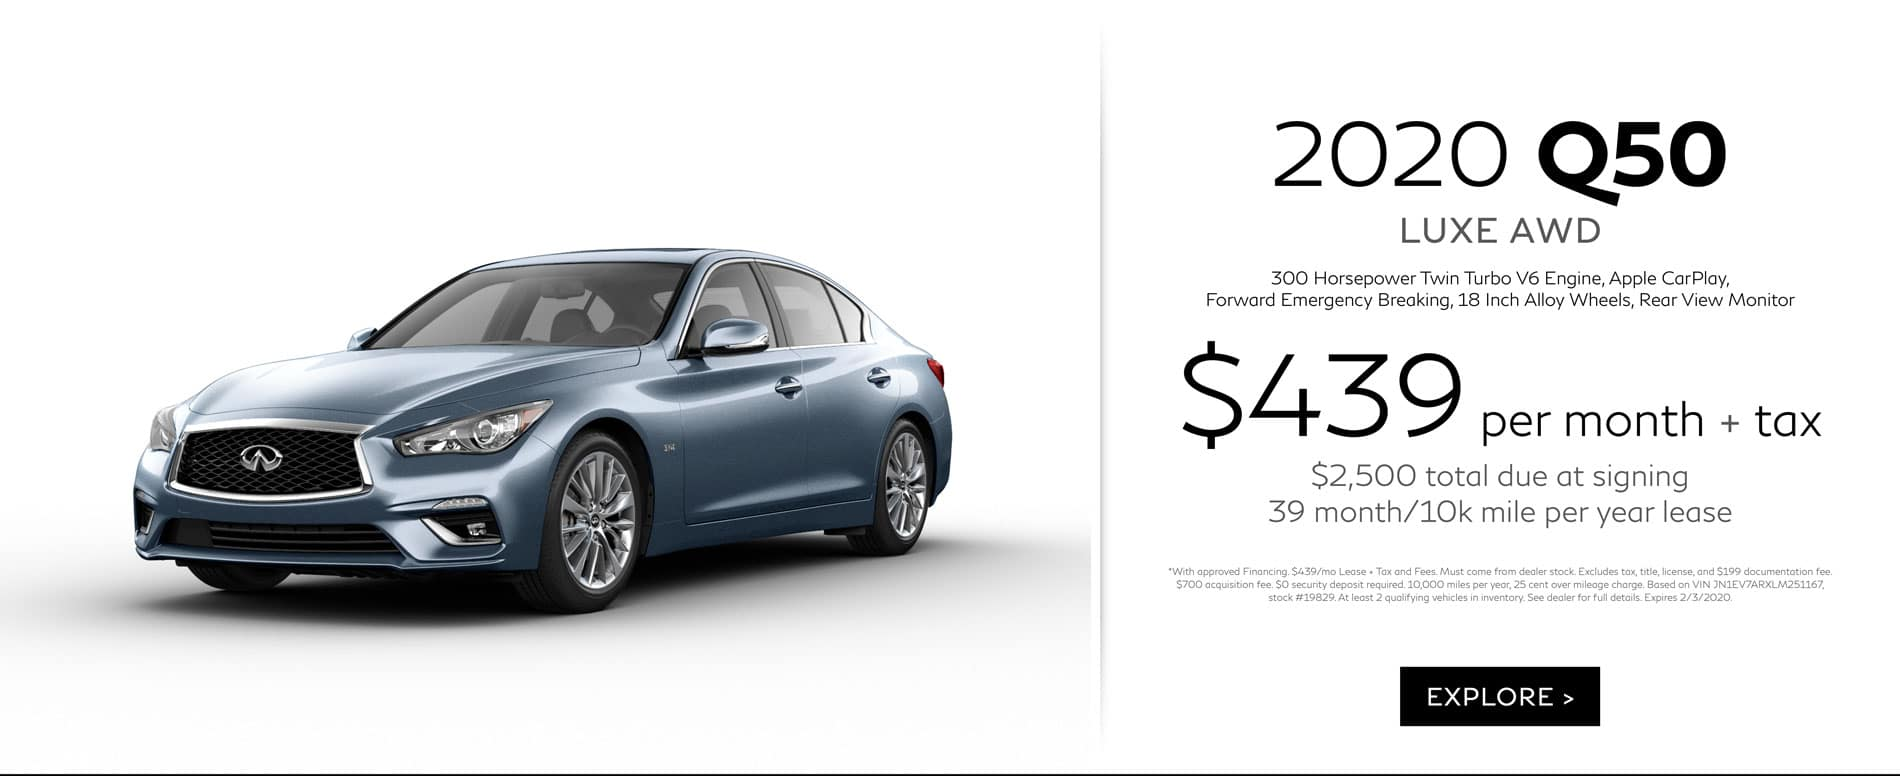 DR INFINITI South Q50 Lease Offer | $439/mo